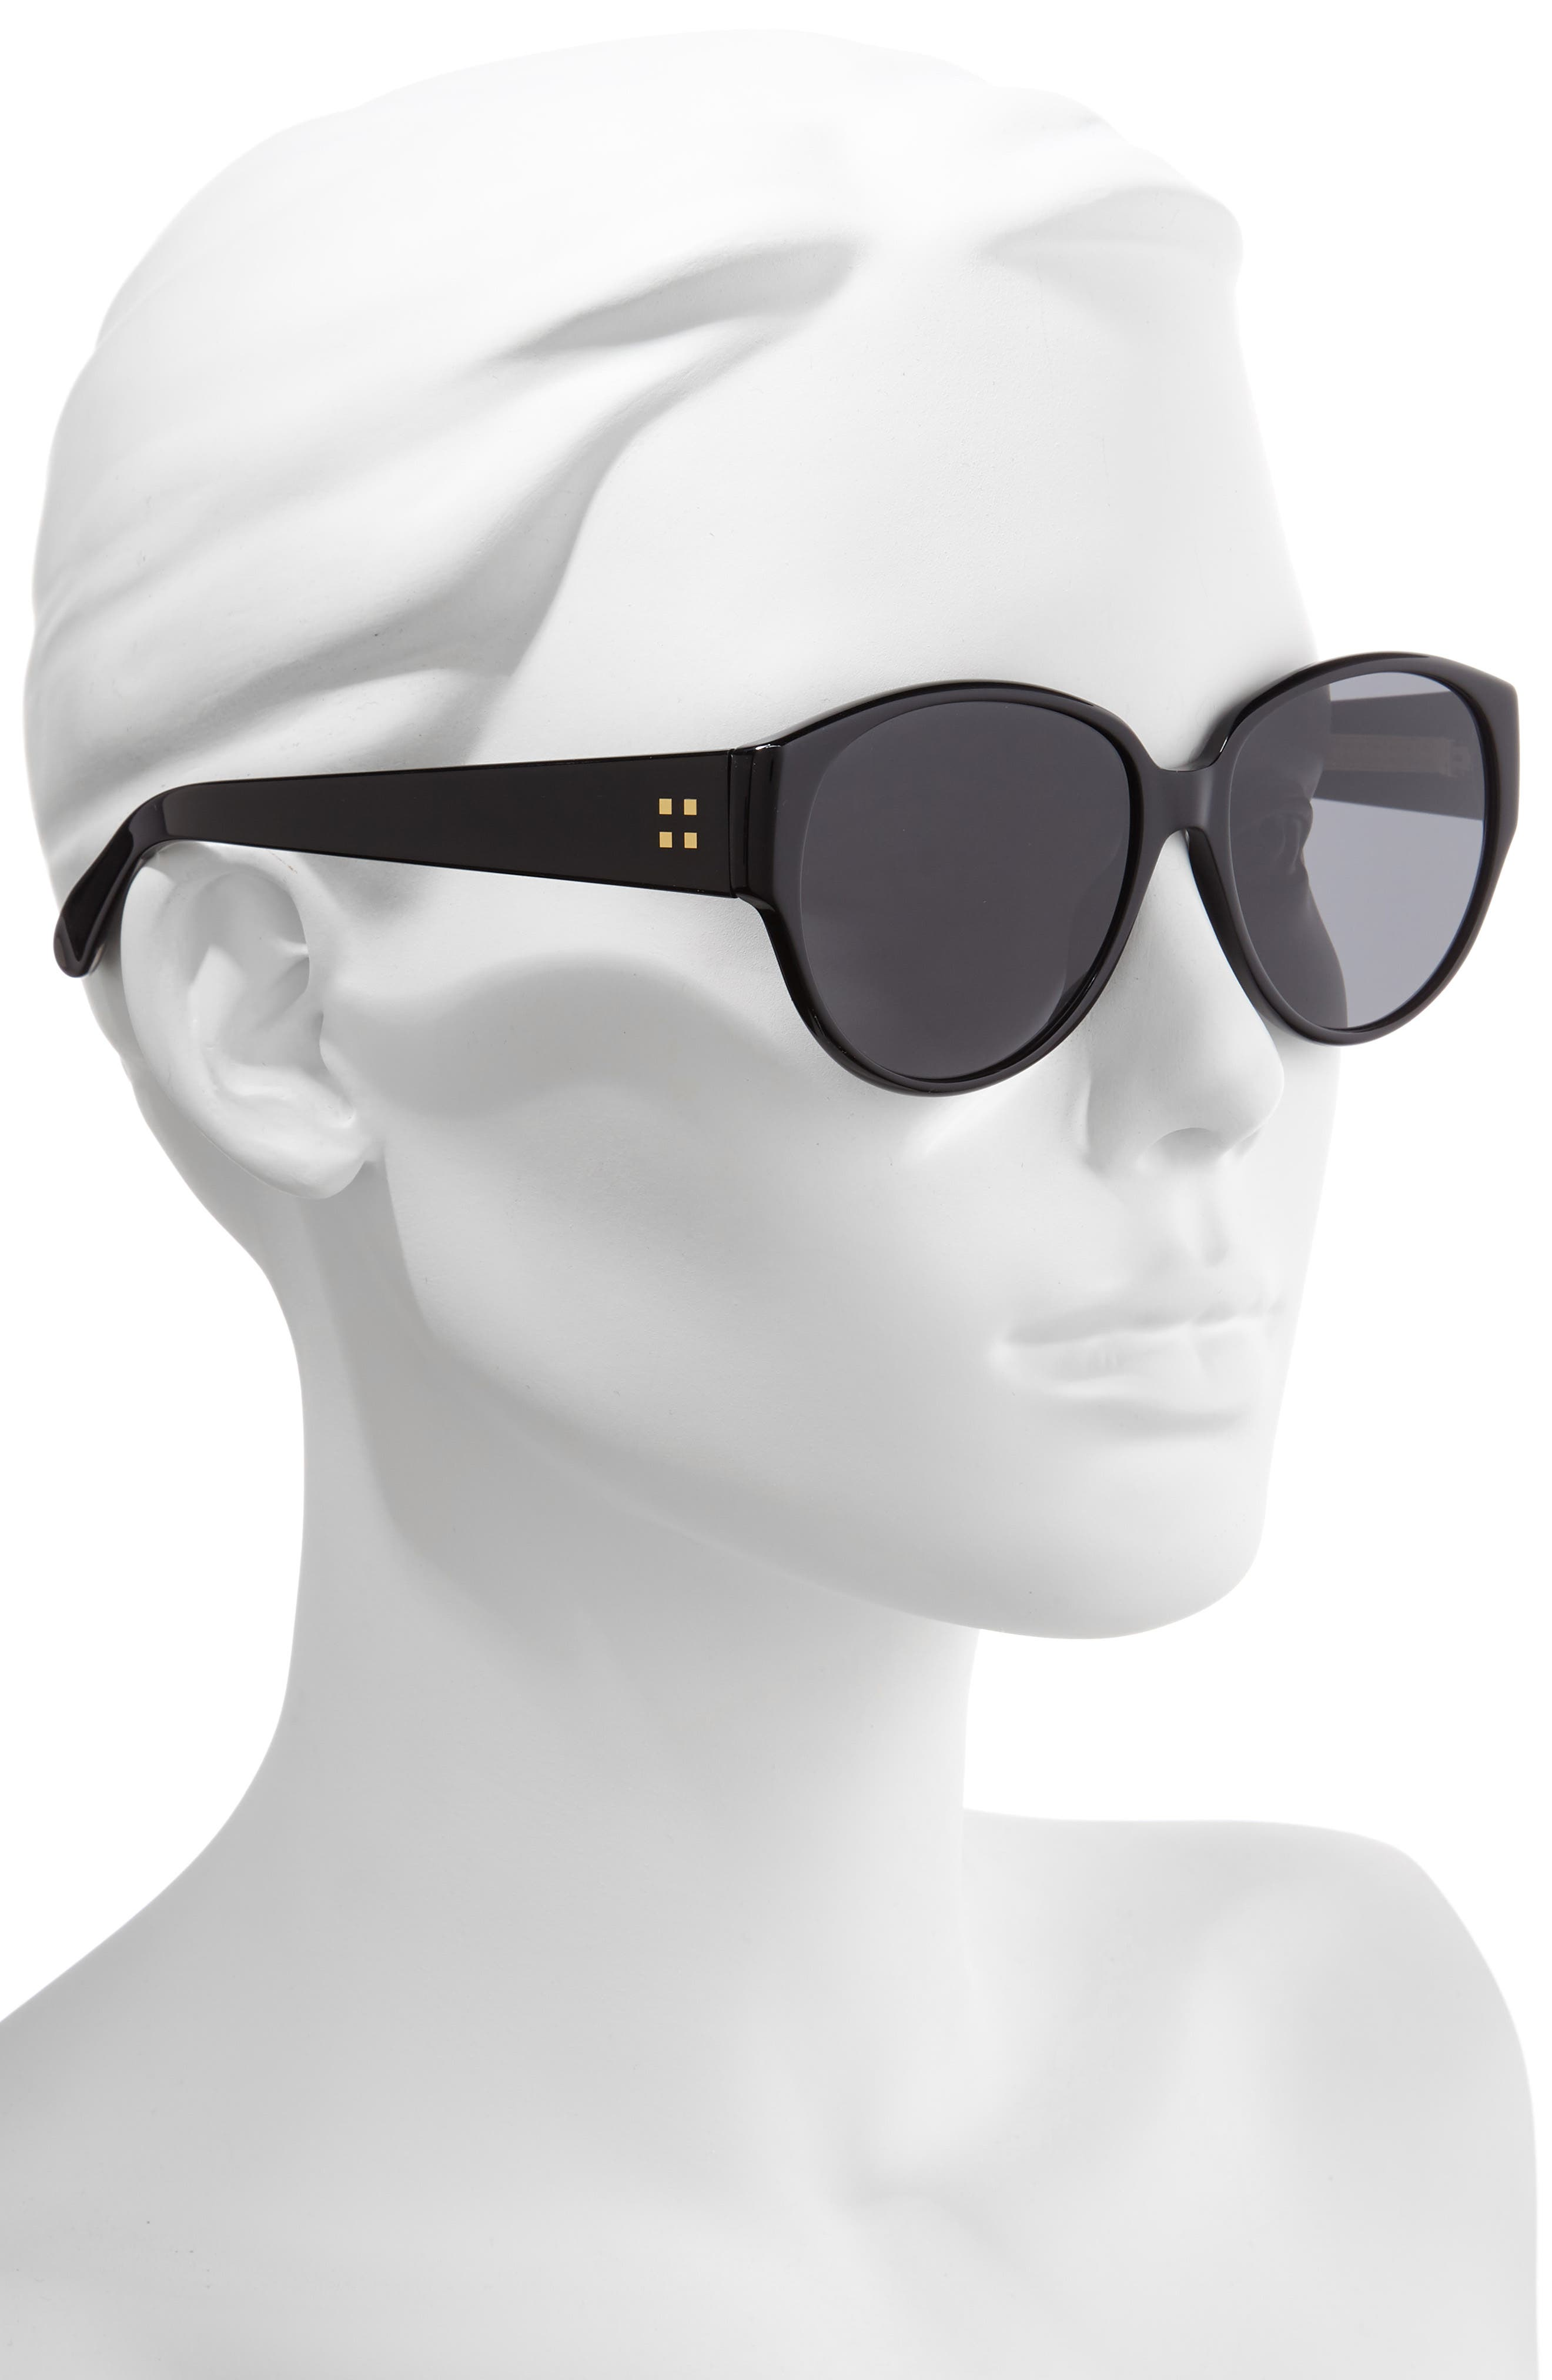 57mm Round Sunglasses,                             Alternate thumbnail 2, color,                             001